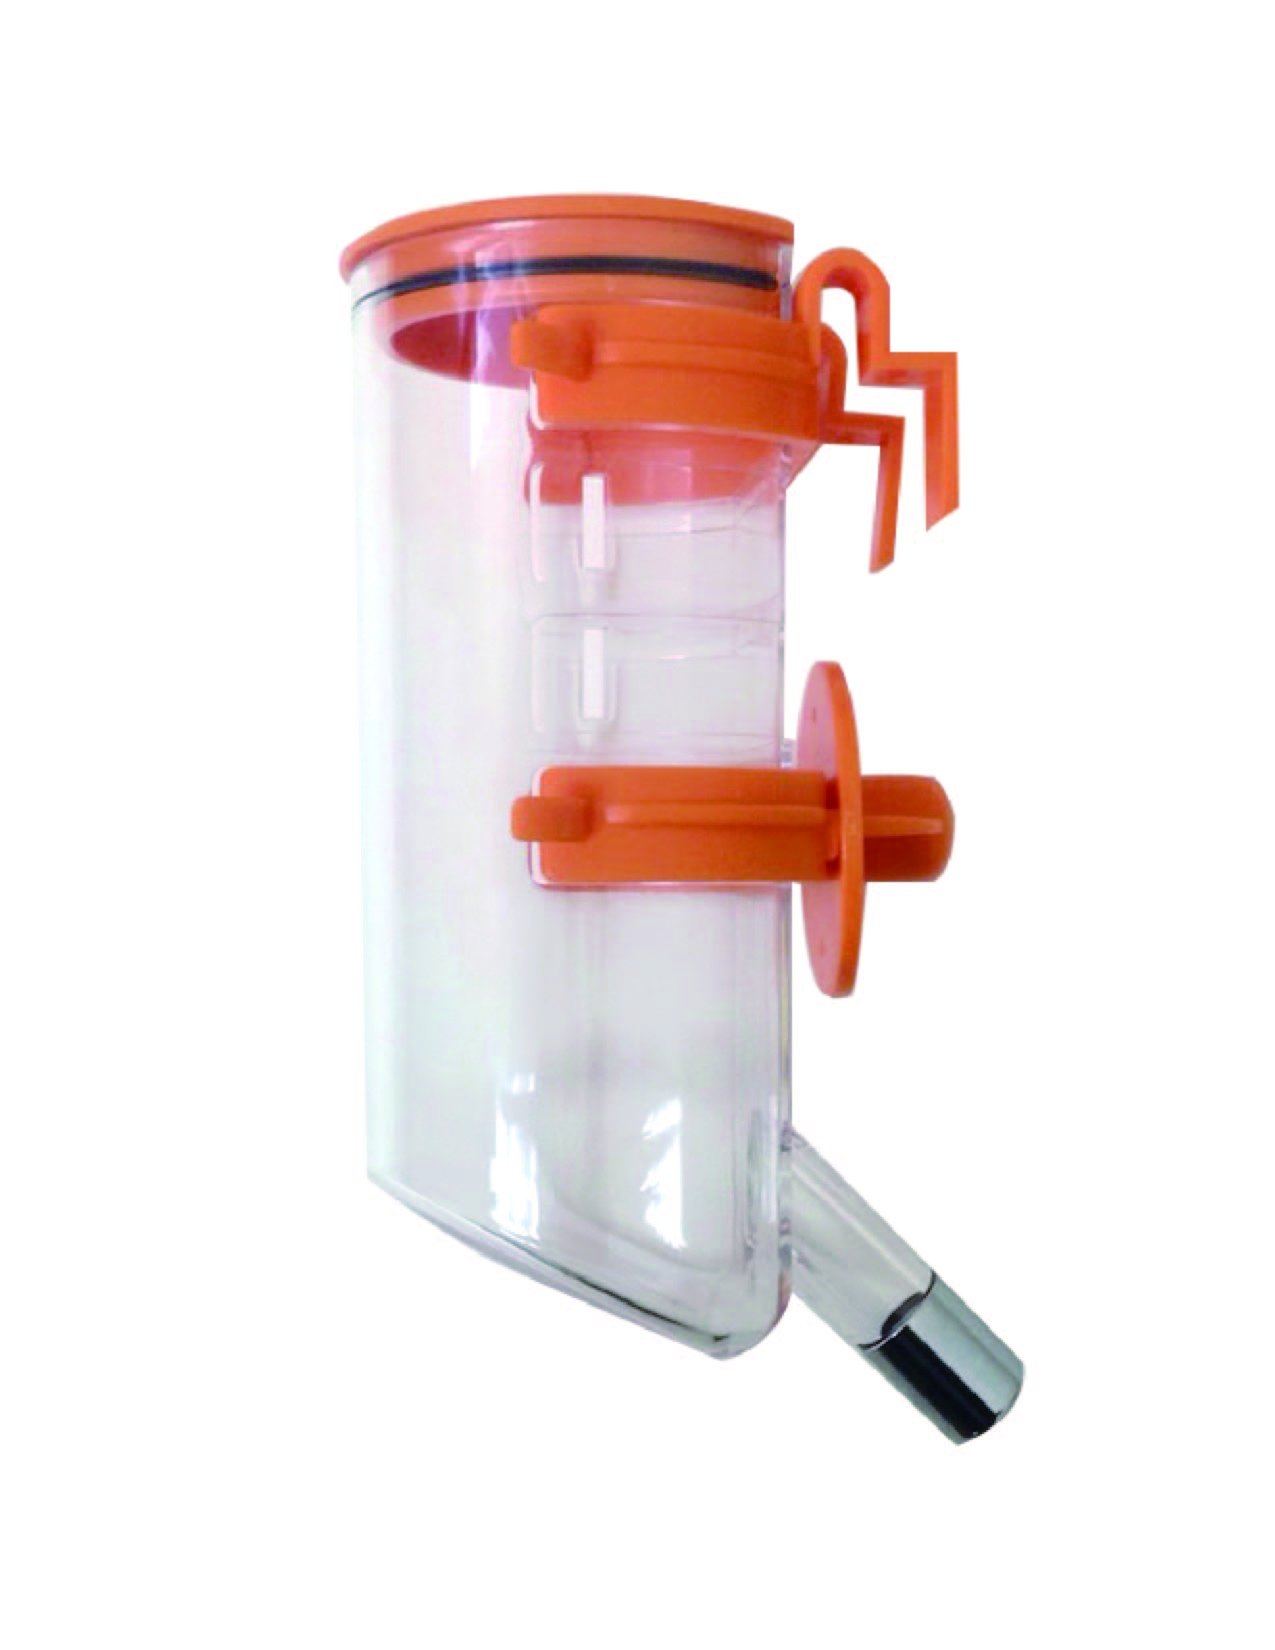 Choco Nose H220 Classic Opened-top Water Feeder with Hook, Pet Water Dispenser, Water Bottle for Small-sized Dog, Cat, Medium-sized Rabbit, No Drip, 13.5 Oz. Nozzle Diameter: 16mm